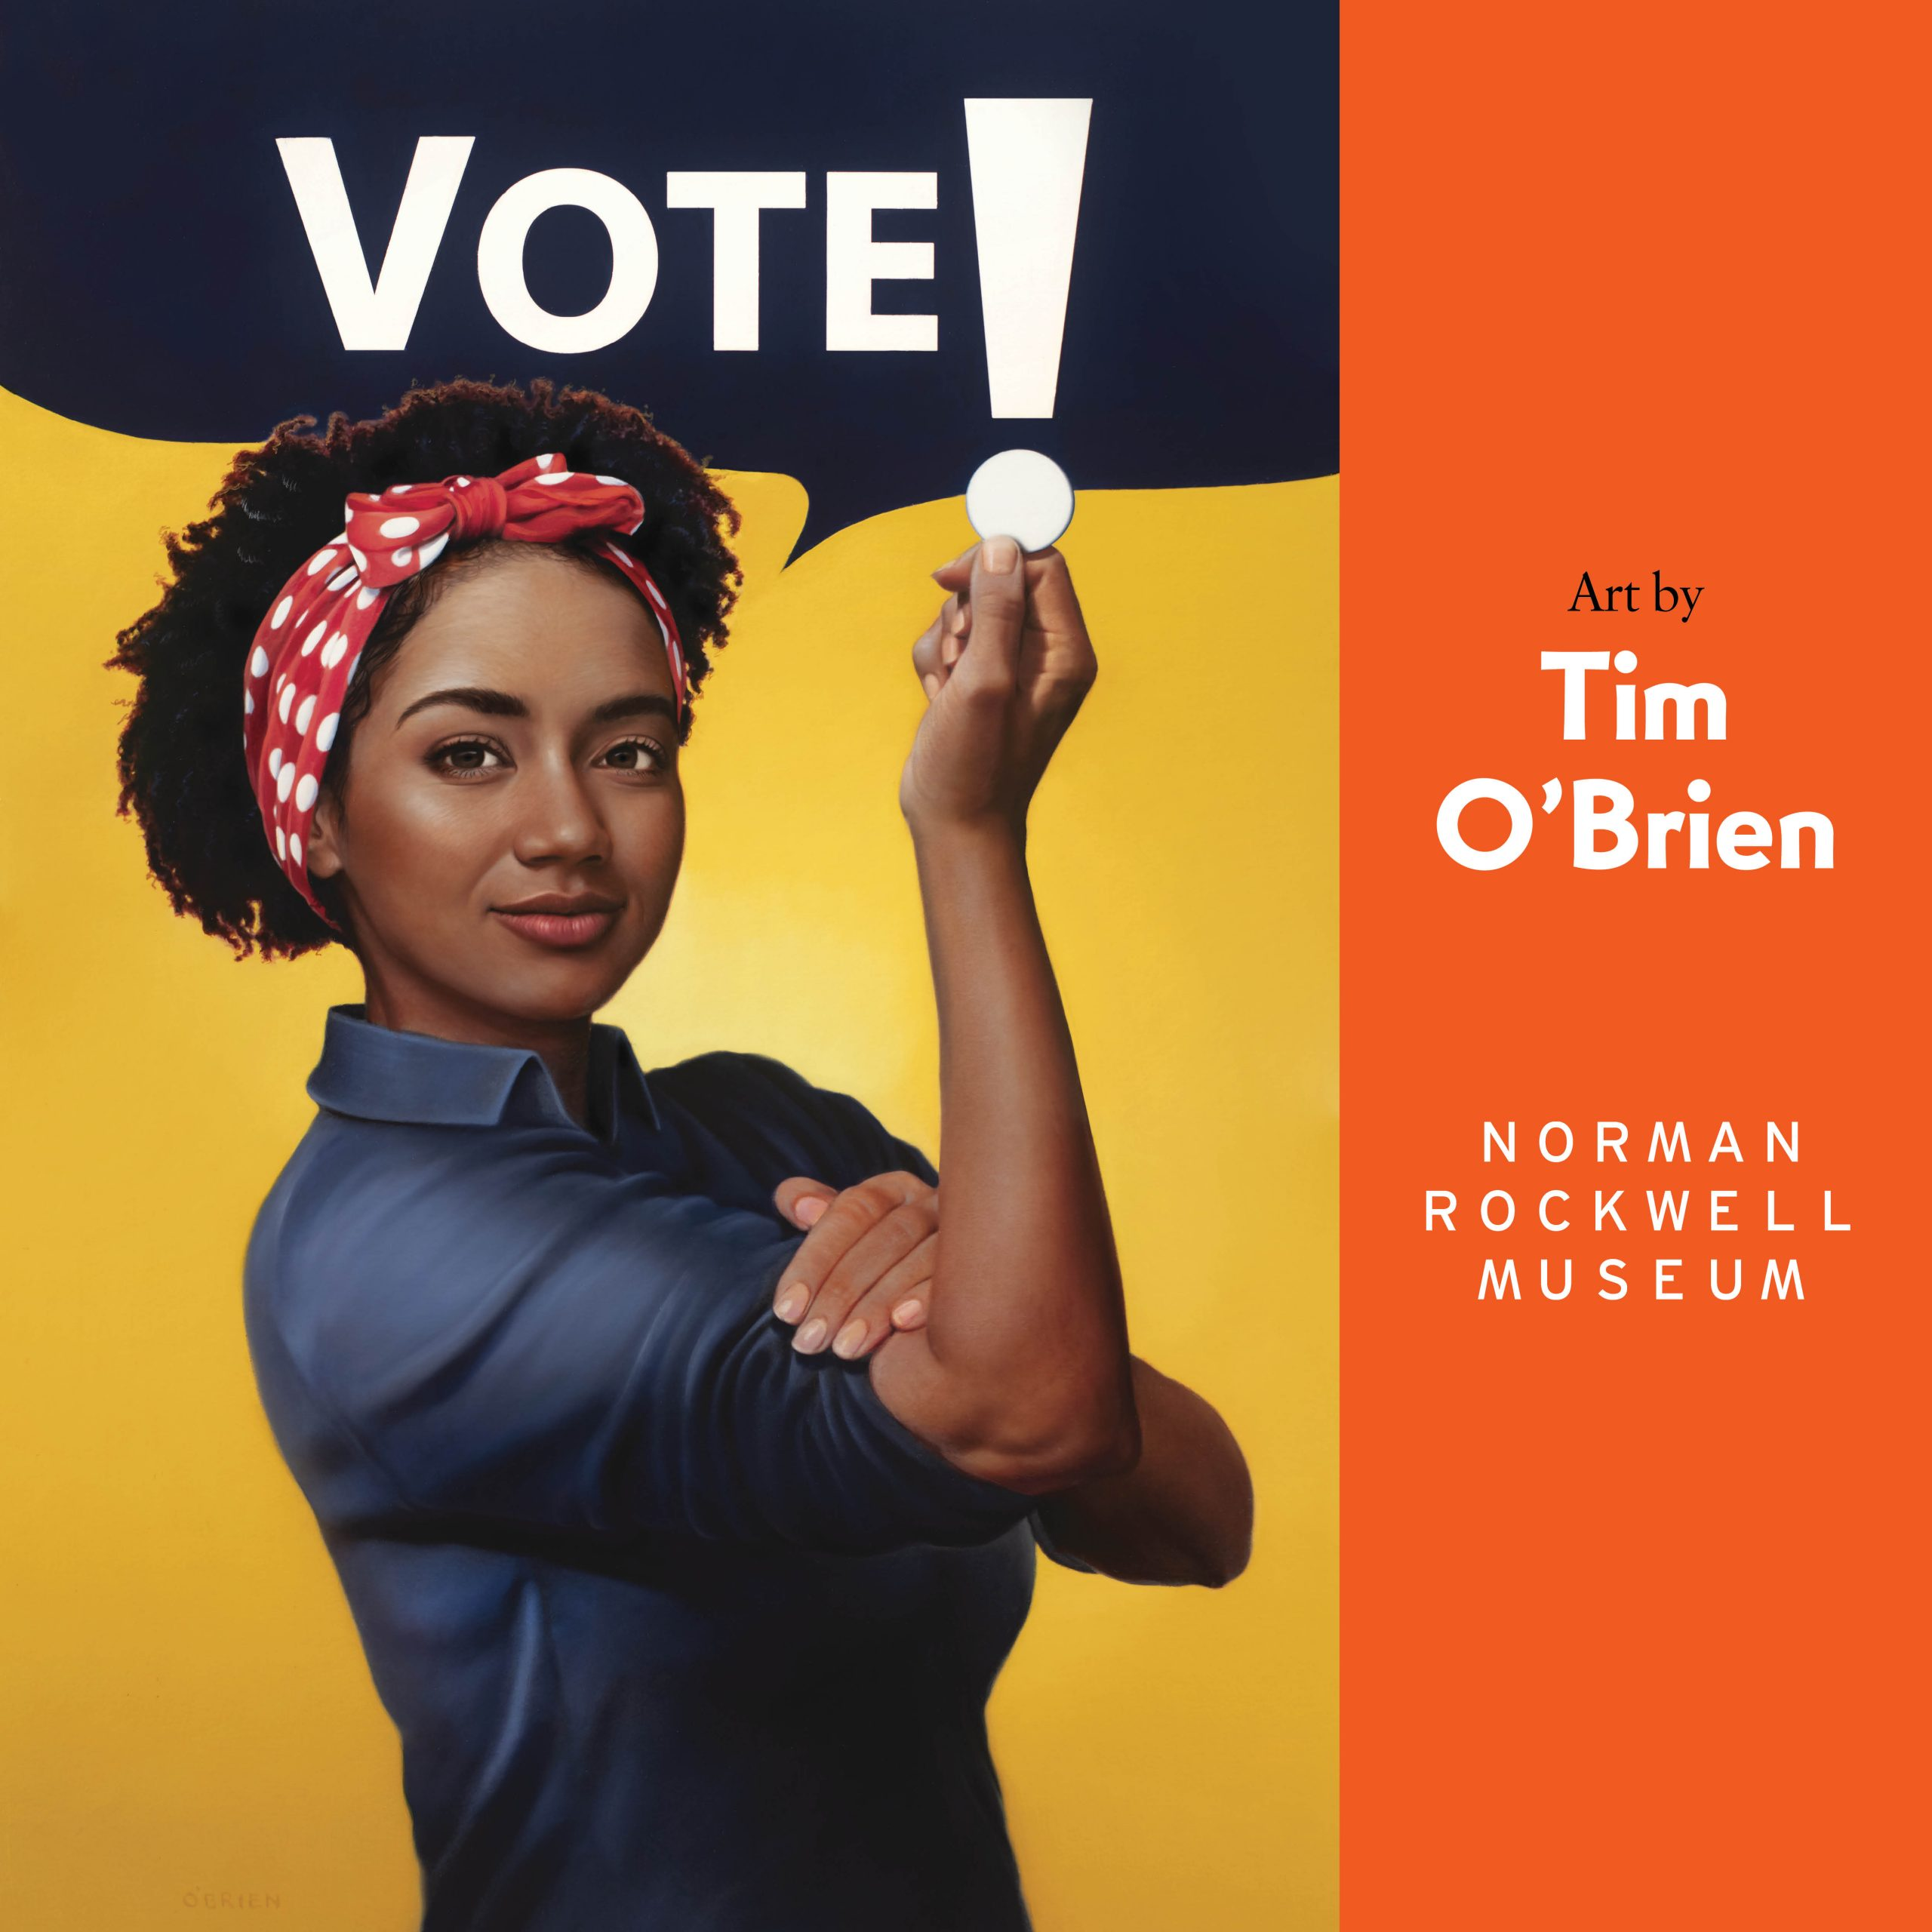 Tim O'Brien: Vote